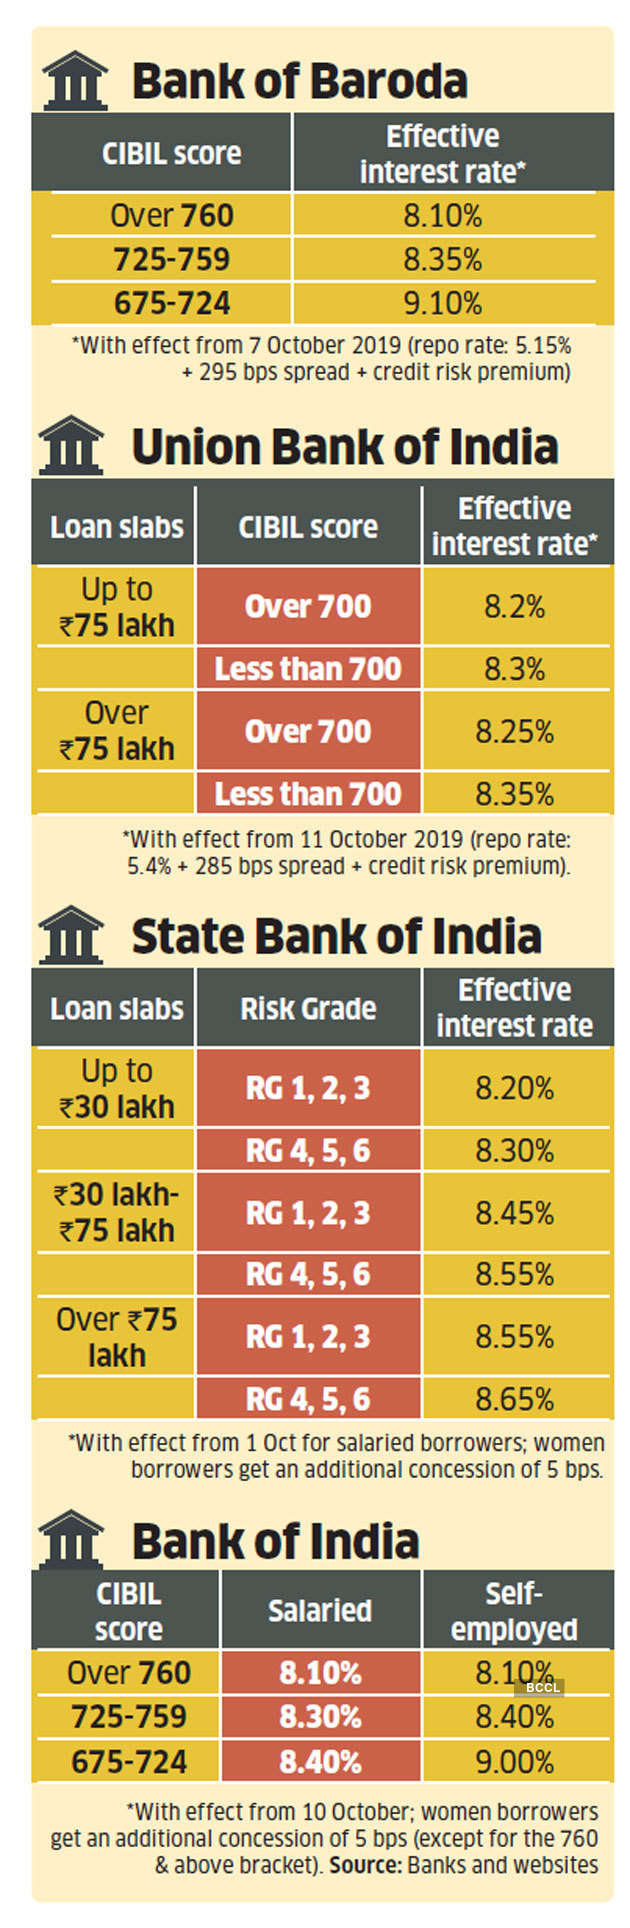 Hdfc bank home loan interest rate 2019